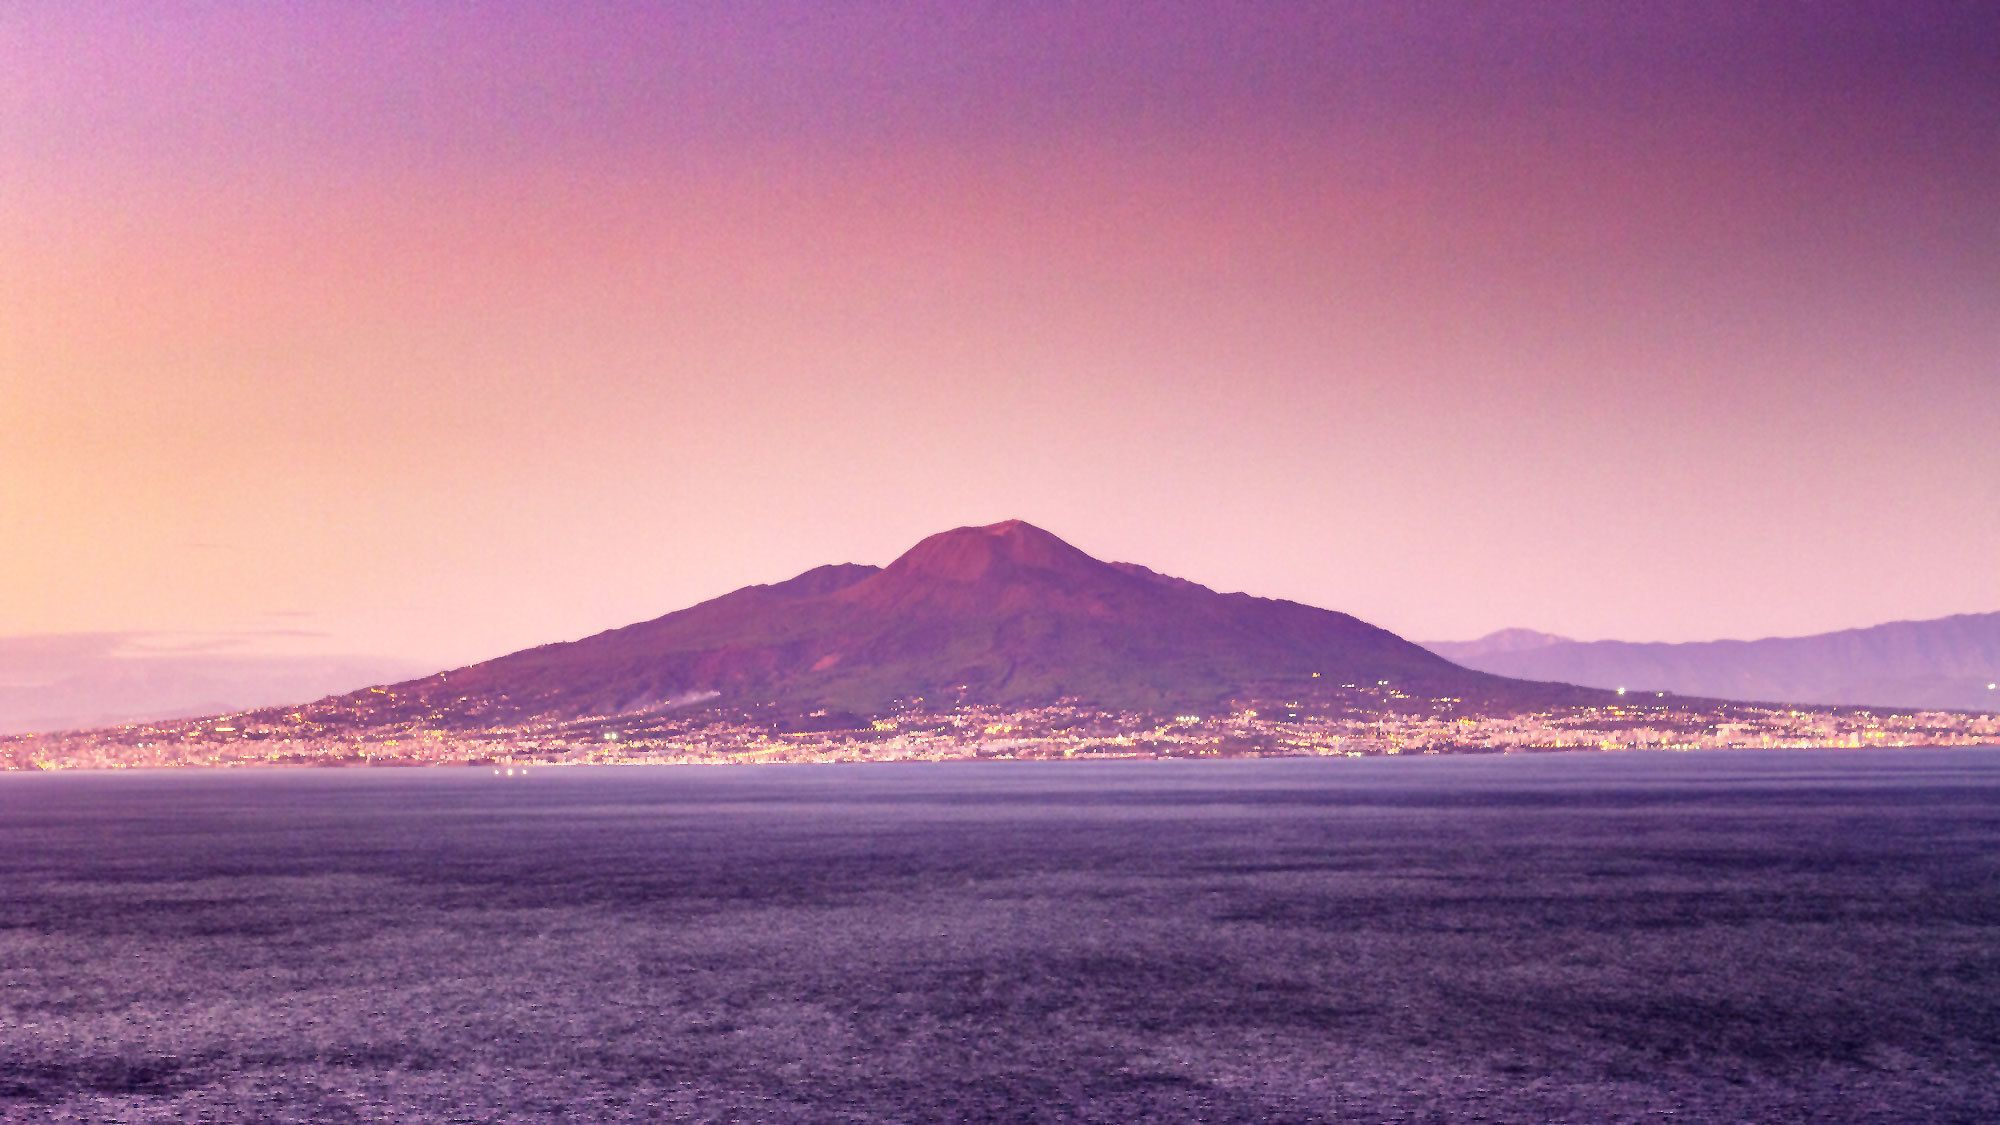 Mount Vesuvius and the city of Naples at sunrise